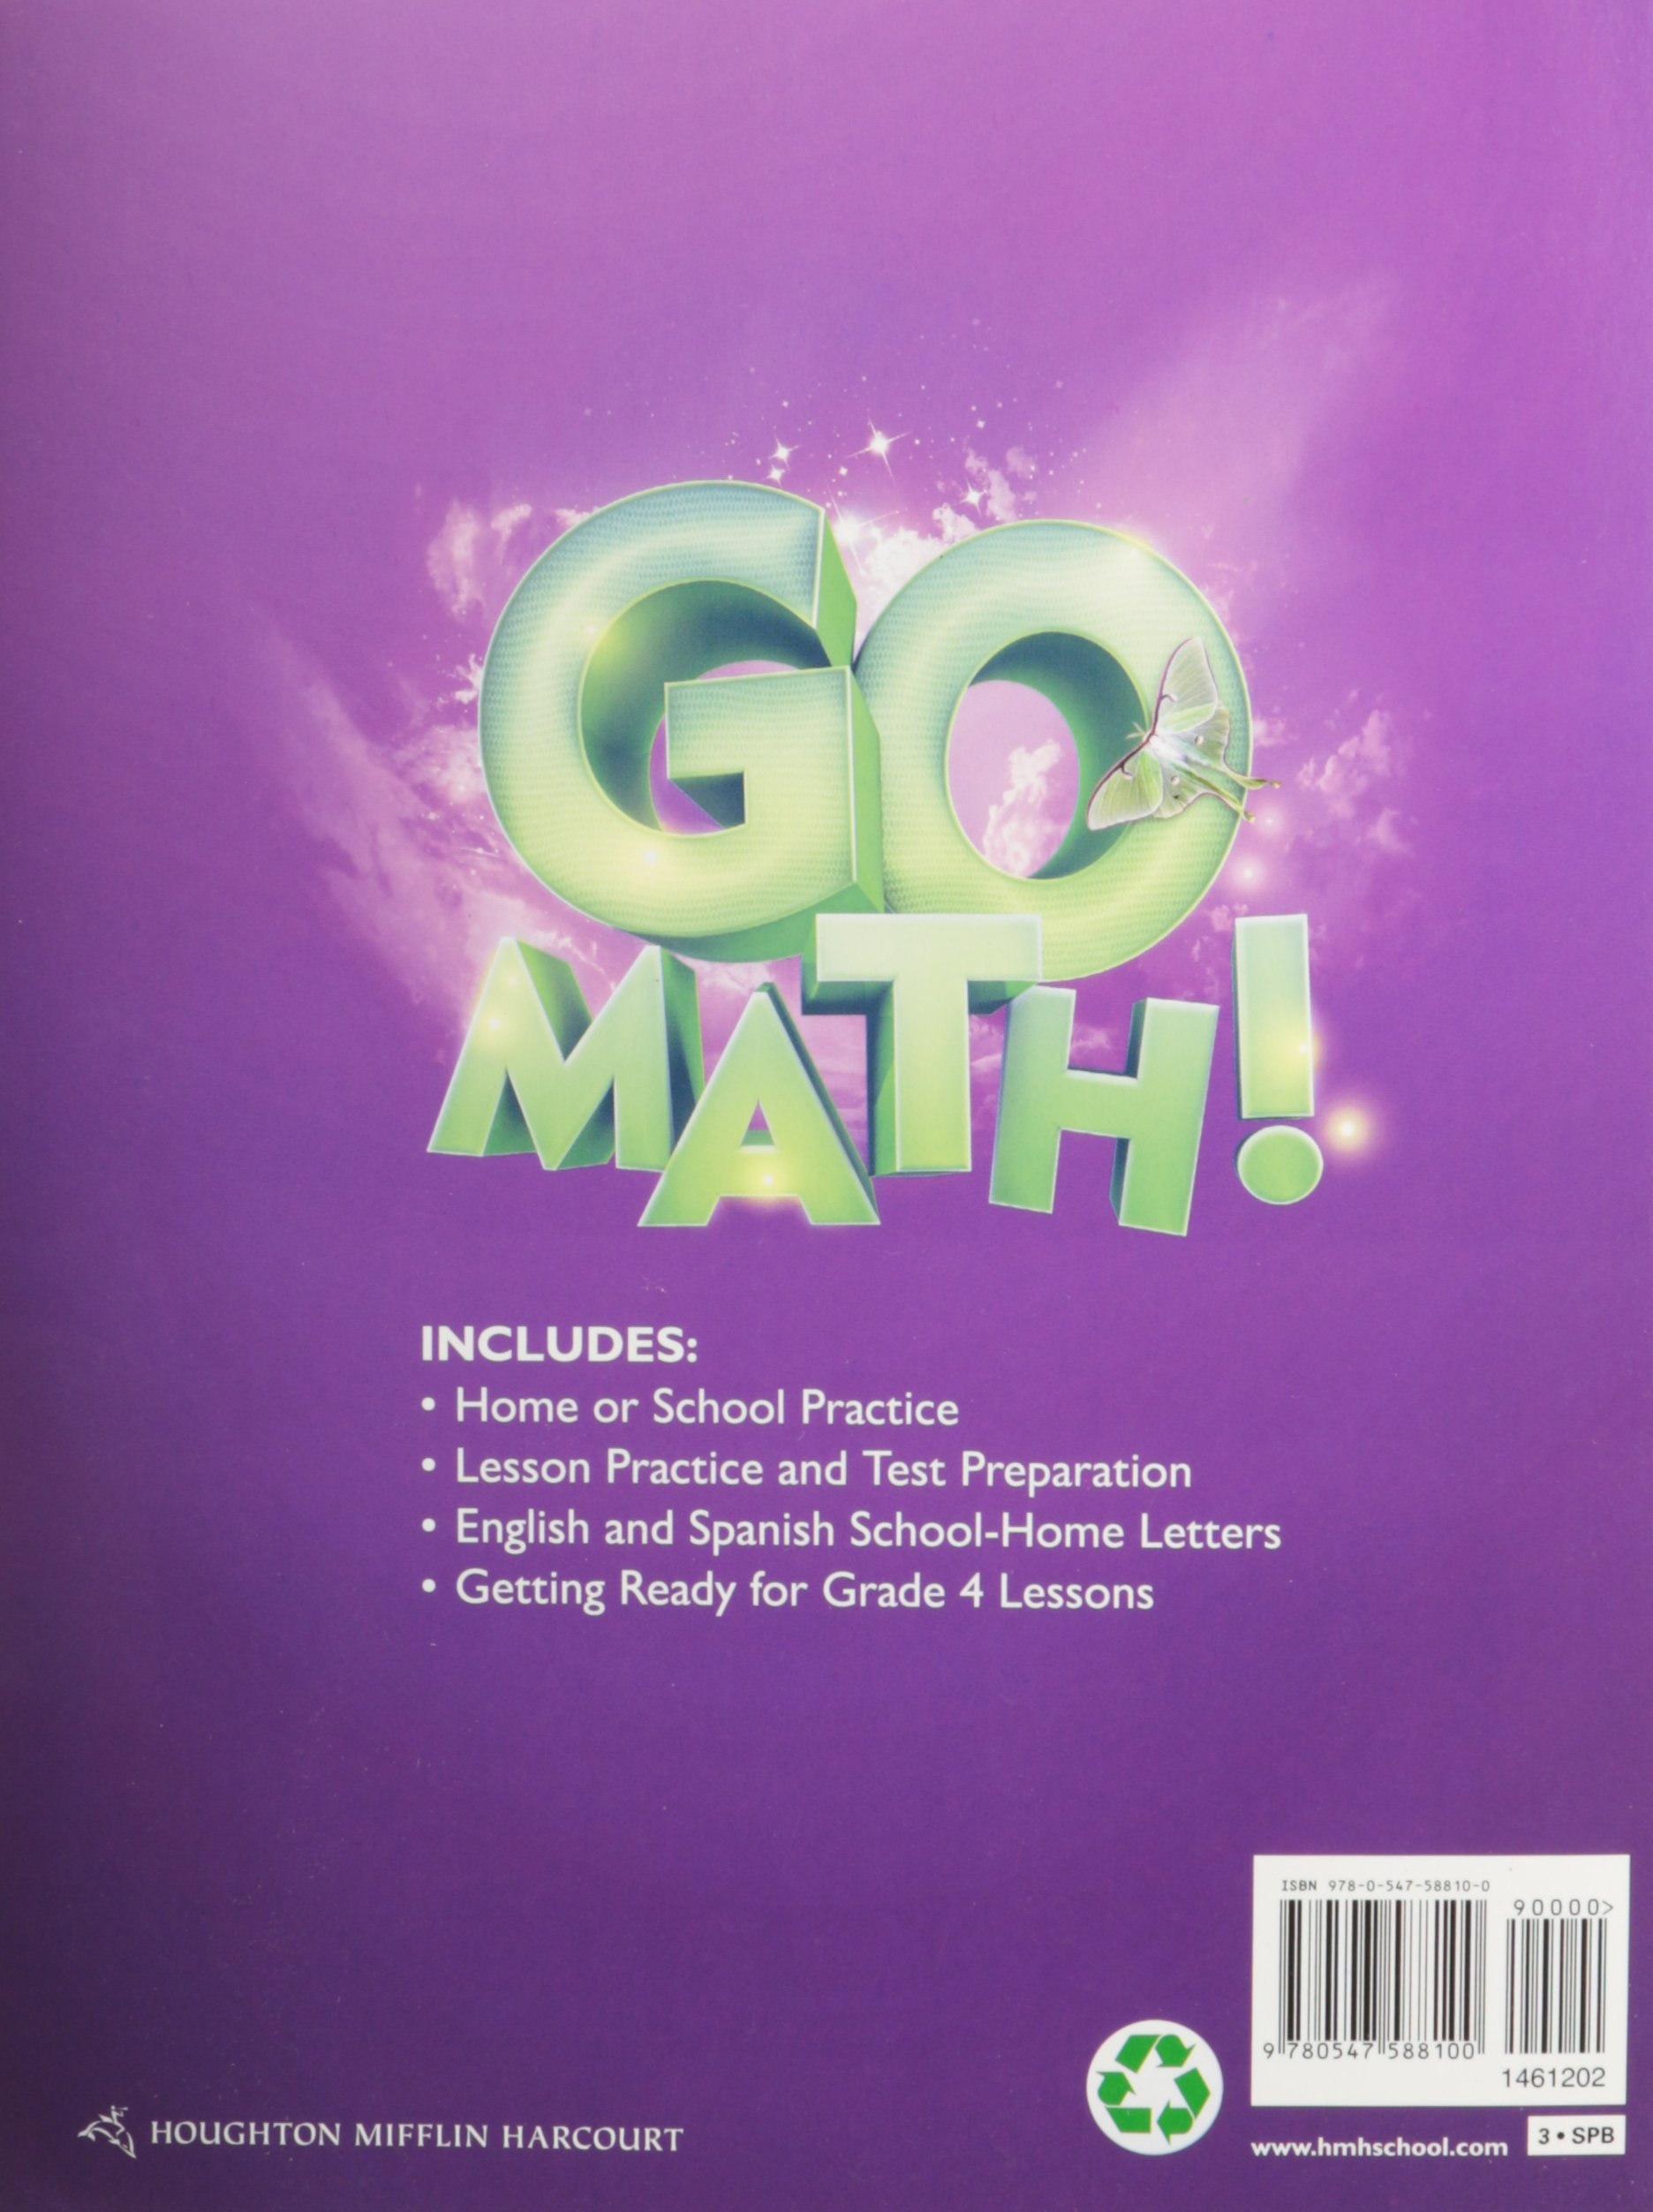 Buy go math standards practice book grade 3 for home or school standards practice book grade 3 for home or school book online at low prices in india go math standards practice book grade 3 for home or school fandeluxe Image collections